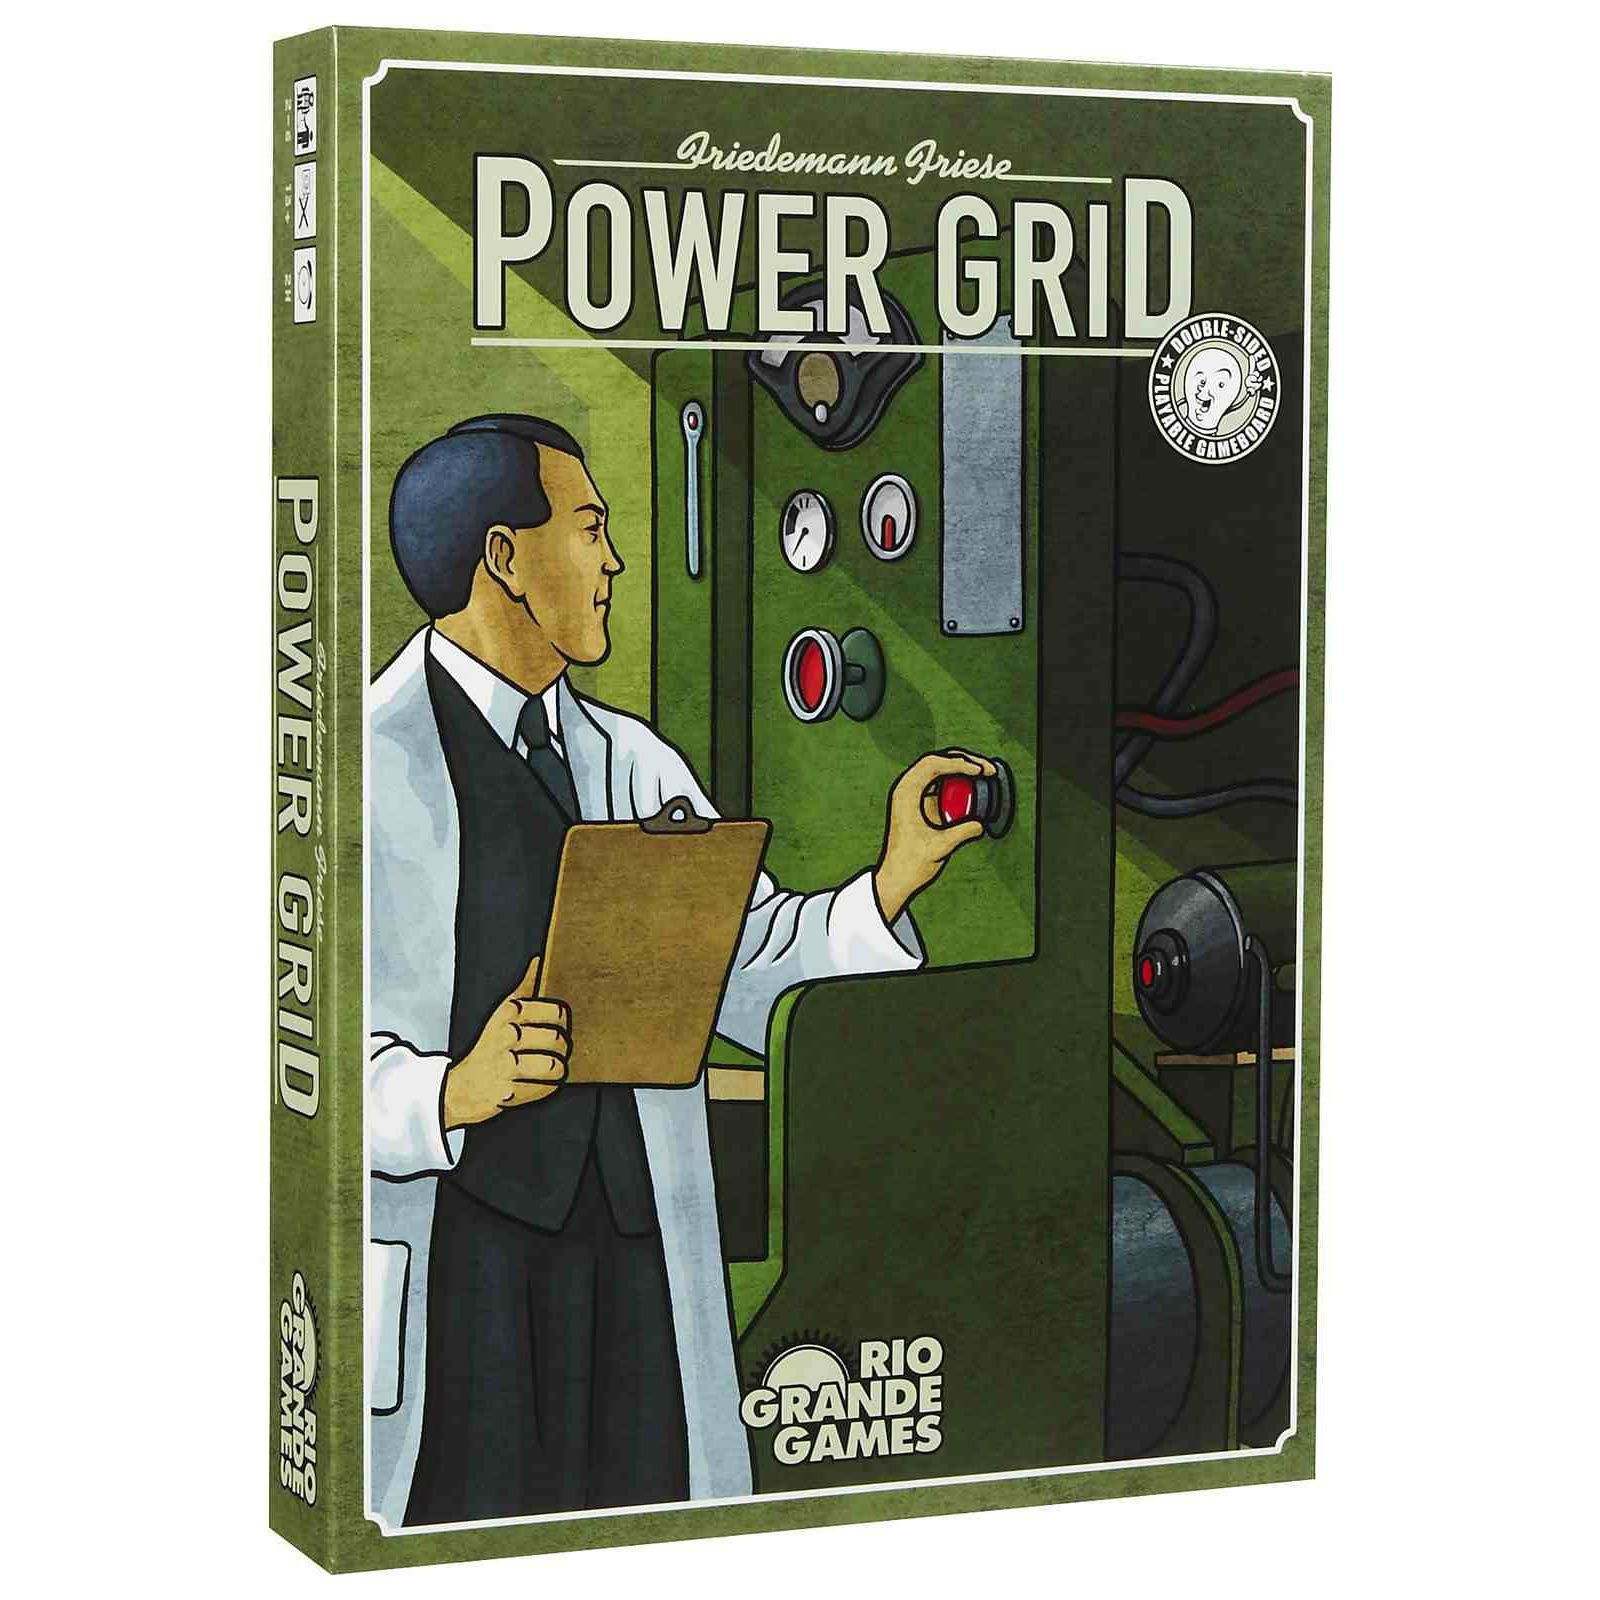 POWERGRID Toy Jungle Online Store Power grid board